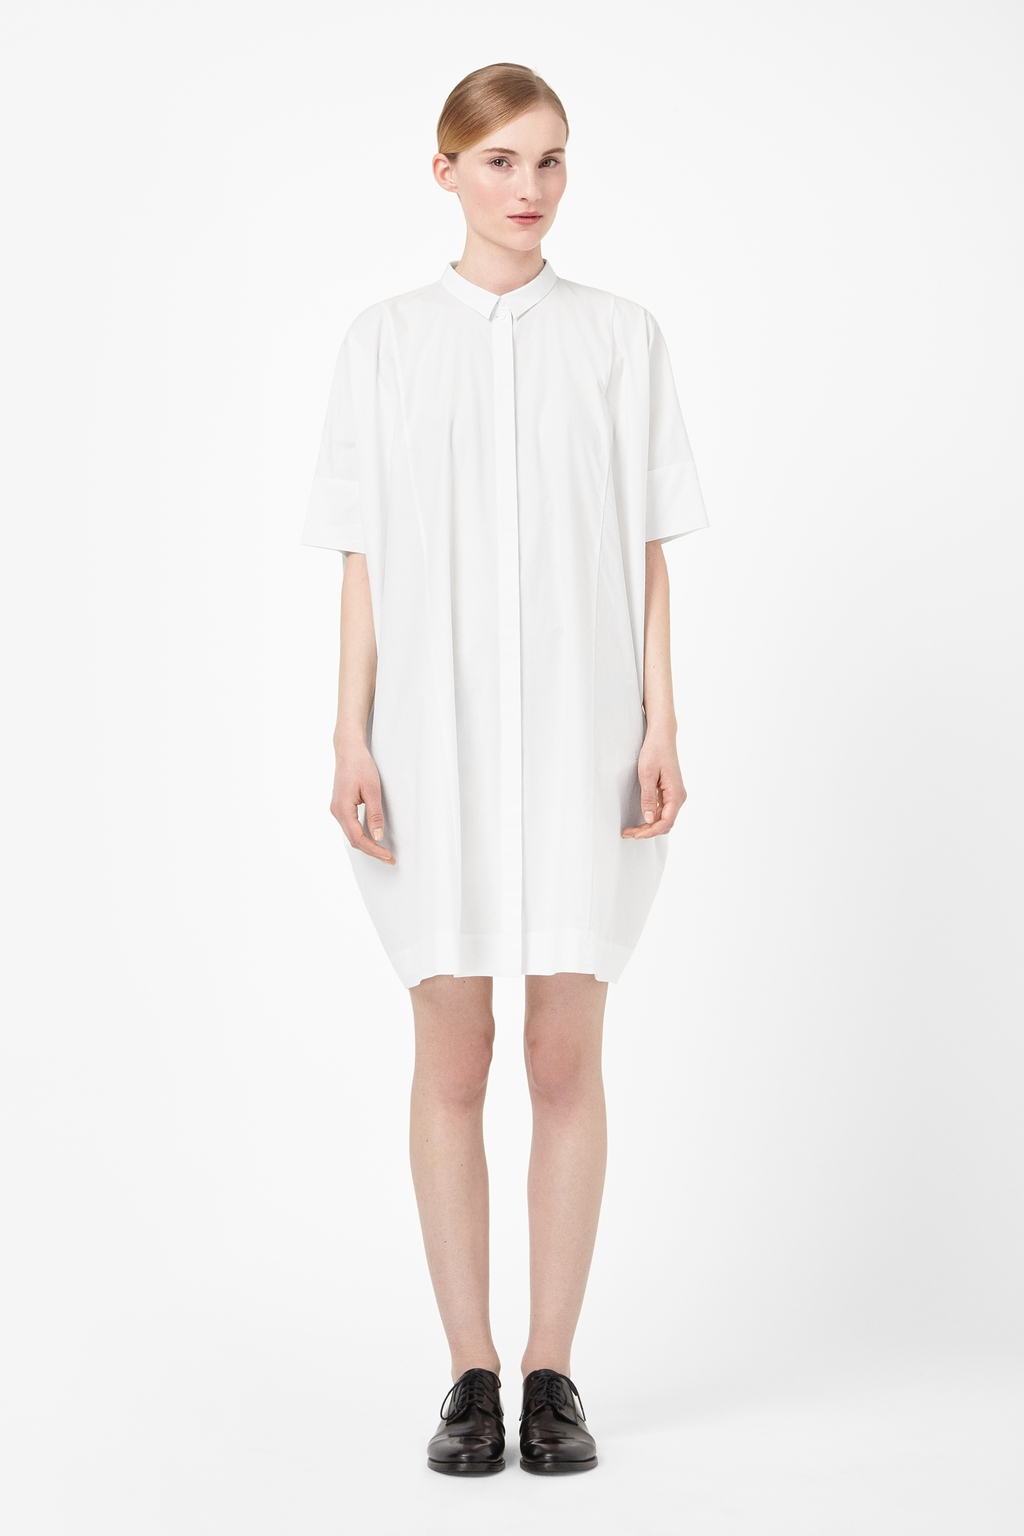 Square Cut Cotton Dress - style: smock; neckline: shirt collar/peter pan/zip with opening; fit: loose; pattern: plain; predominant colour: white; occasions: casual, creative work; length: just above the knee; fibres: cotton - 100%; sleeve length: half sleeve; sleeve style: standard; texture group: cotton feel fabrics; pattern type: fabric; season: s/s 2014